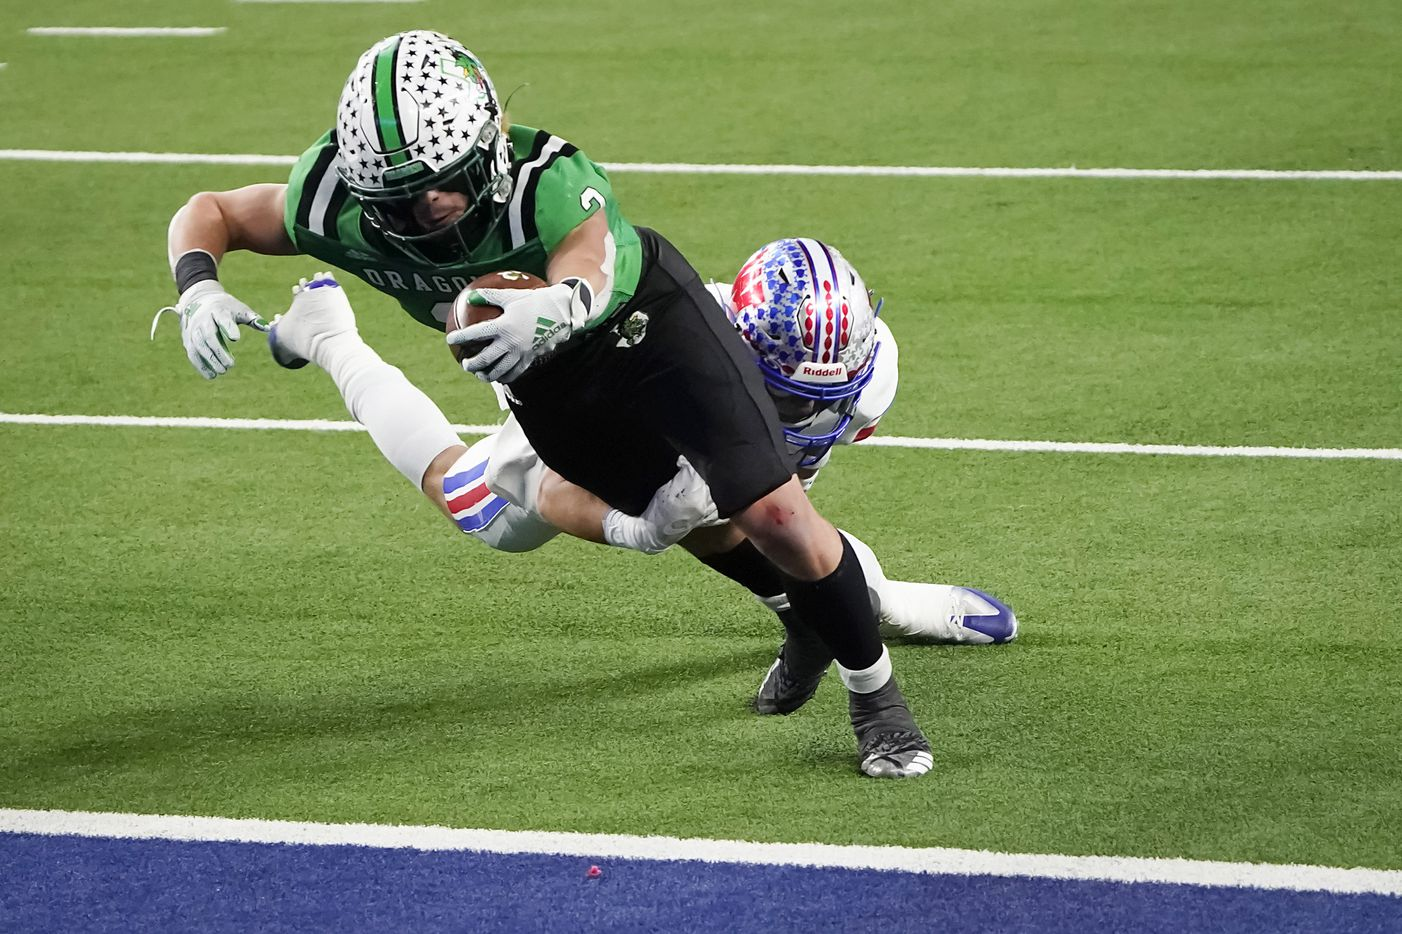 Southlake Carroll running back Owen Allen (2) scores past Austin Westlake defensive back Ford Dickerson (18) on a 3-yard touchdown run during the first quarter of the Class 6A Division I state football championship game at AT&T Stadium on Saturday, Jan. 16, 2021, in Arlington, Texas.